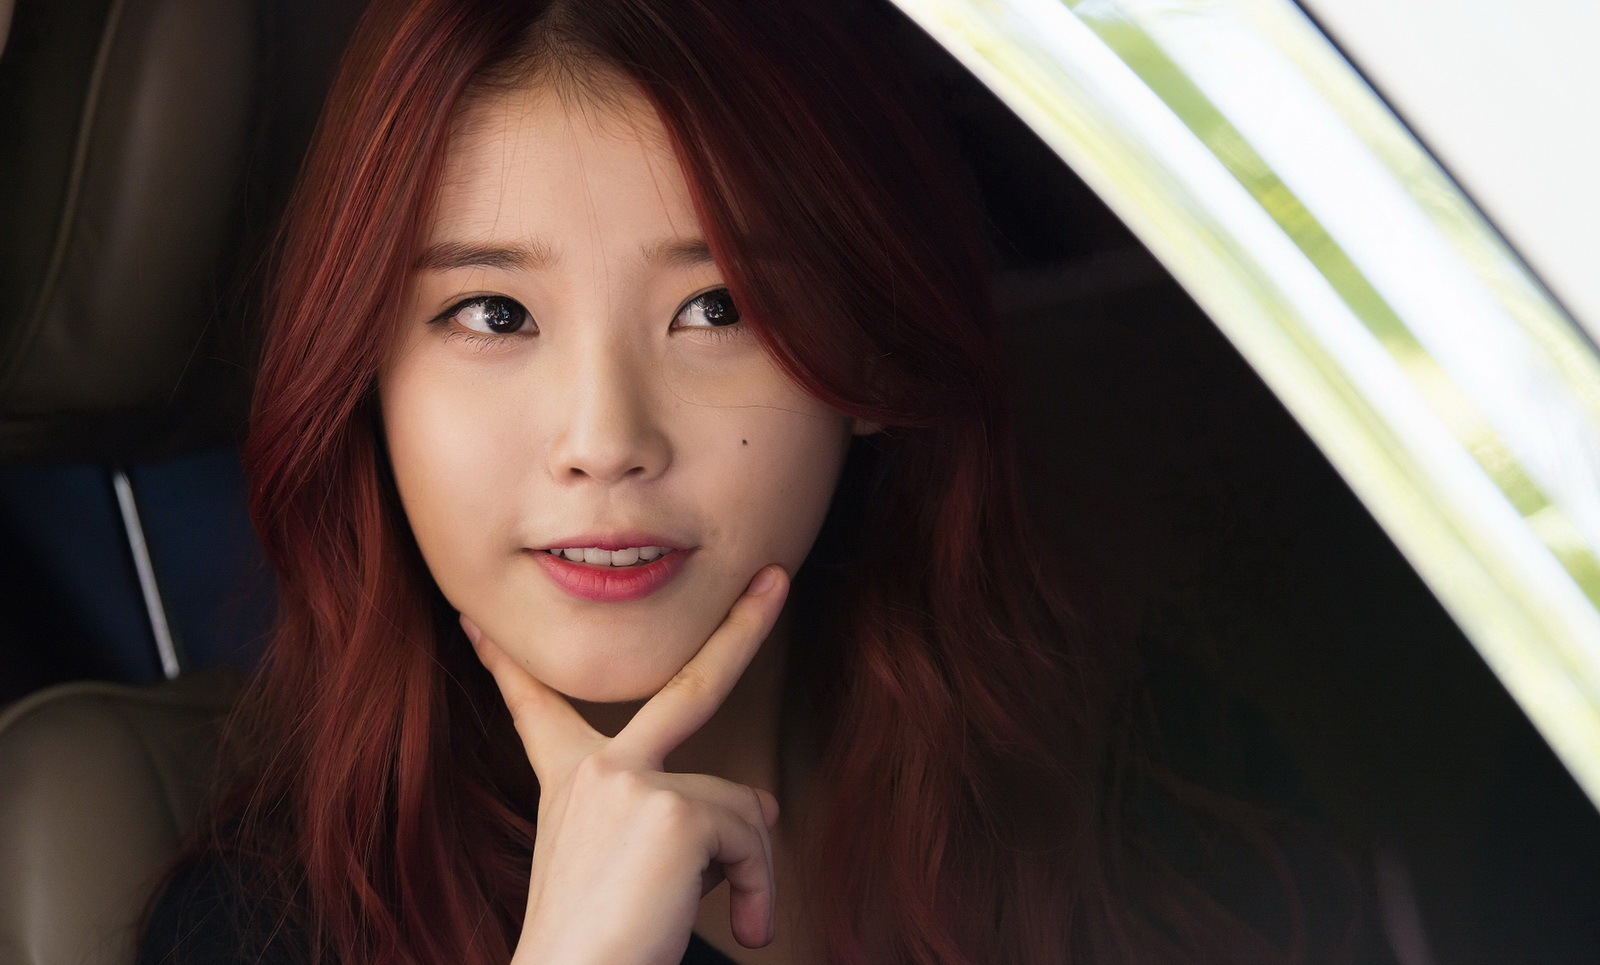 iu computer wallpapers desktop backgrounds 1600x965